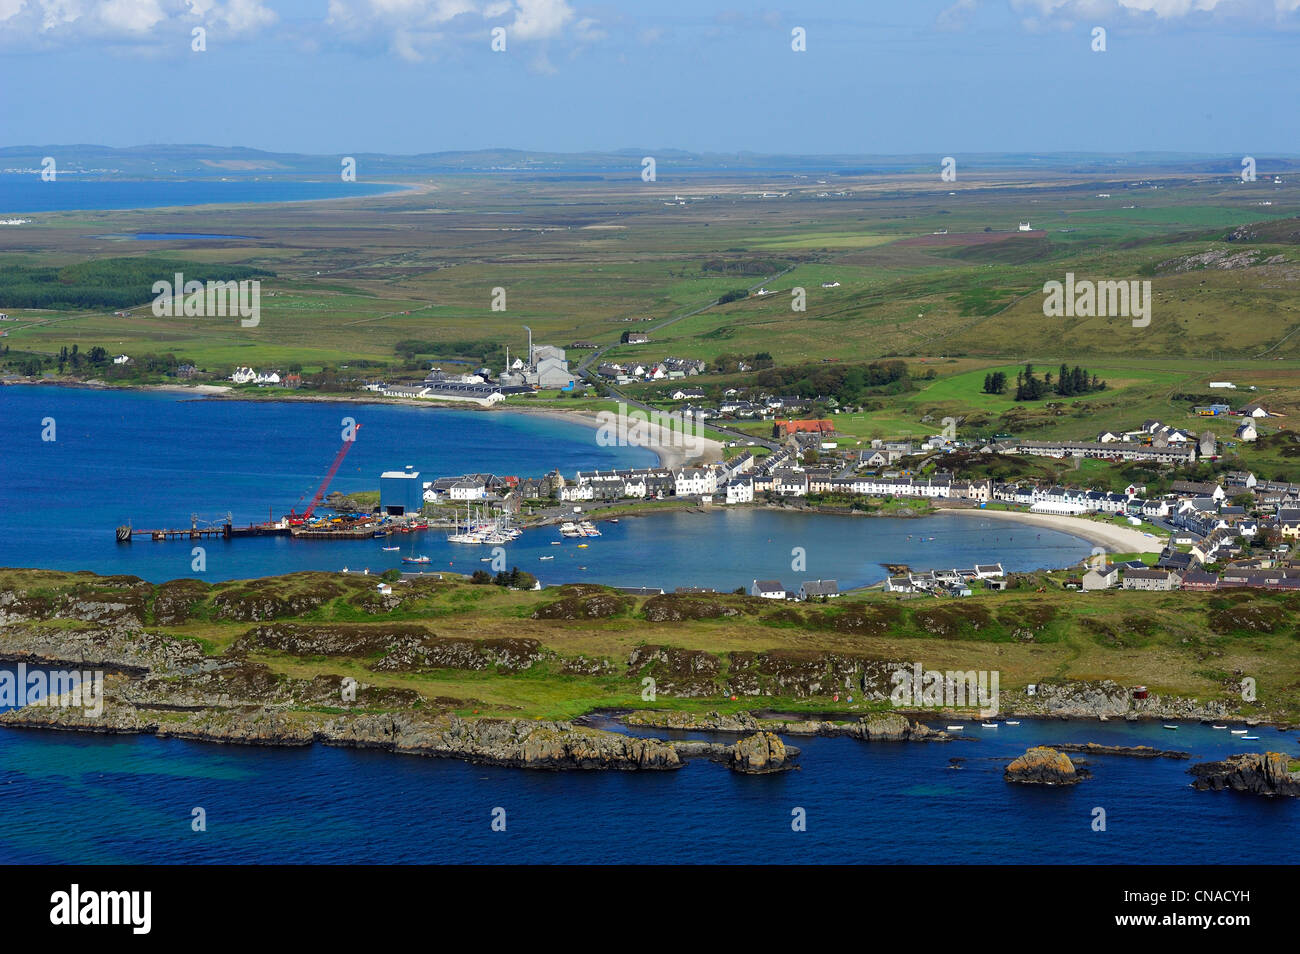 United Kingdom, Scotland, Inner Hebrides, Islay Island, Port Ellen village (aerial view) - Stock Image